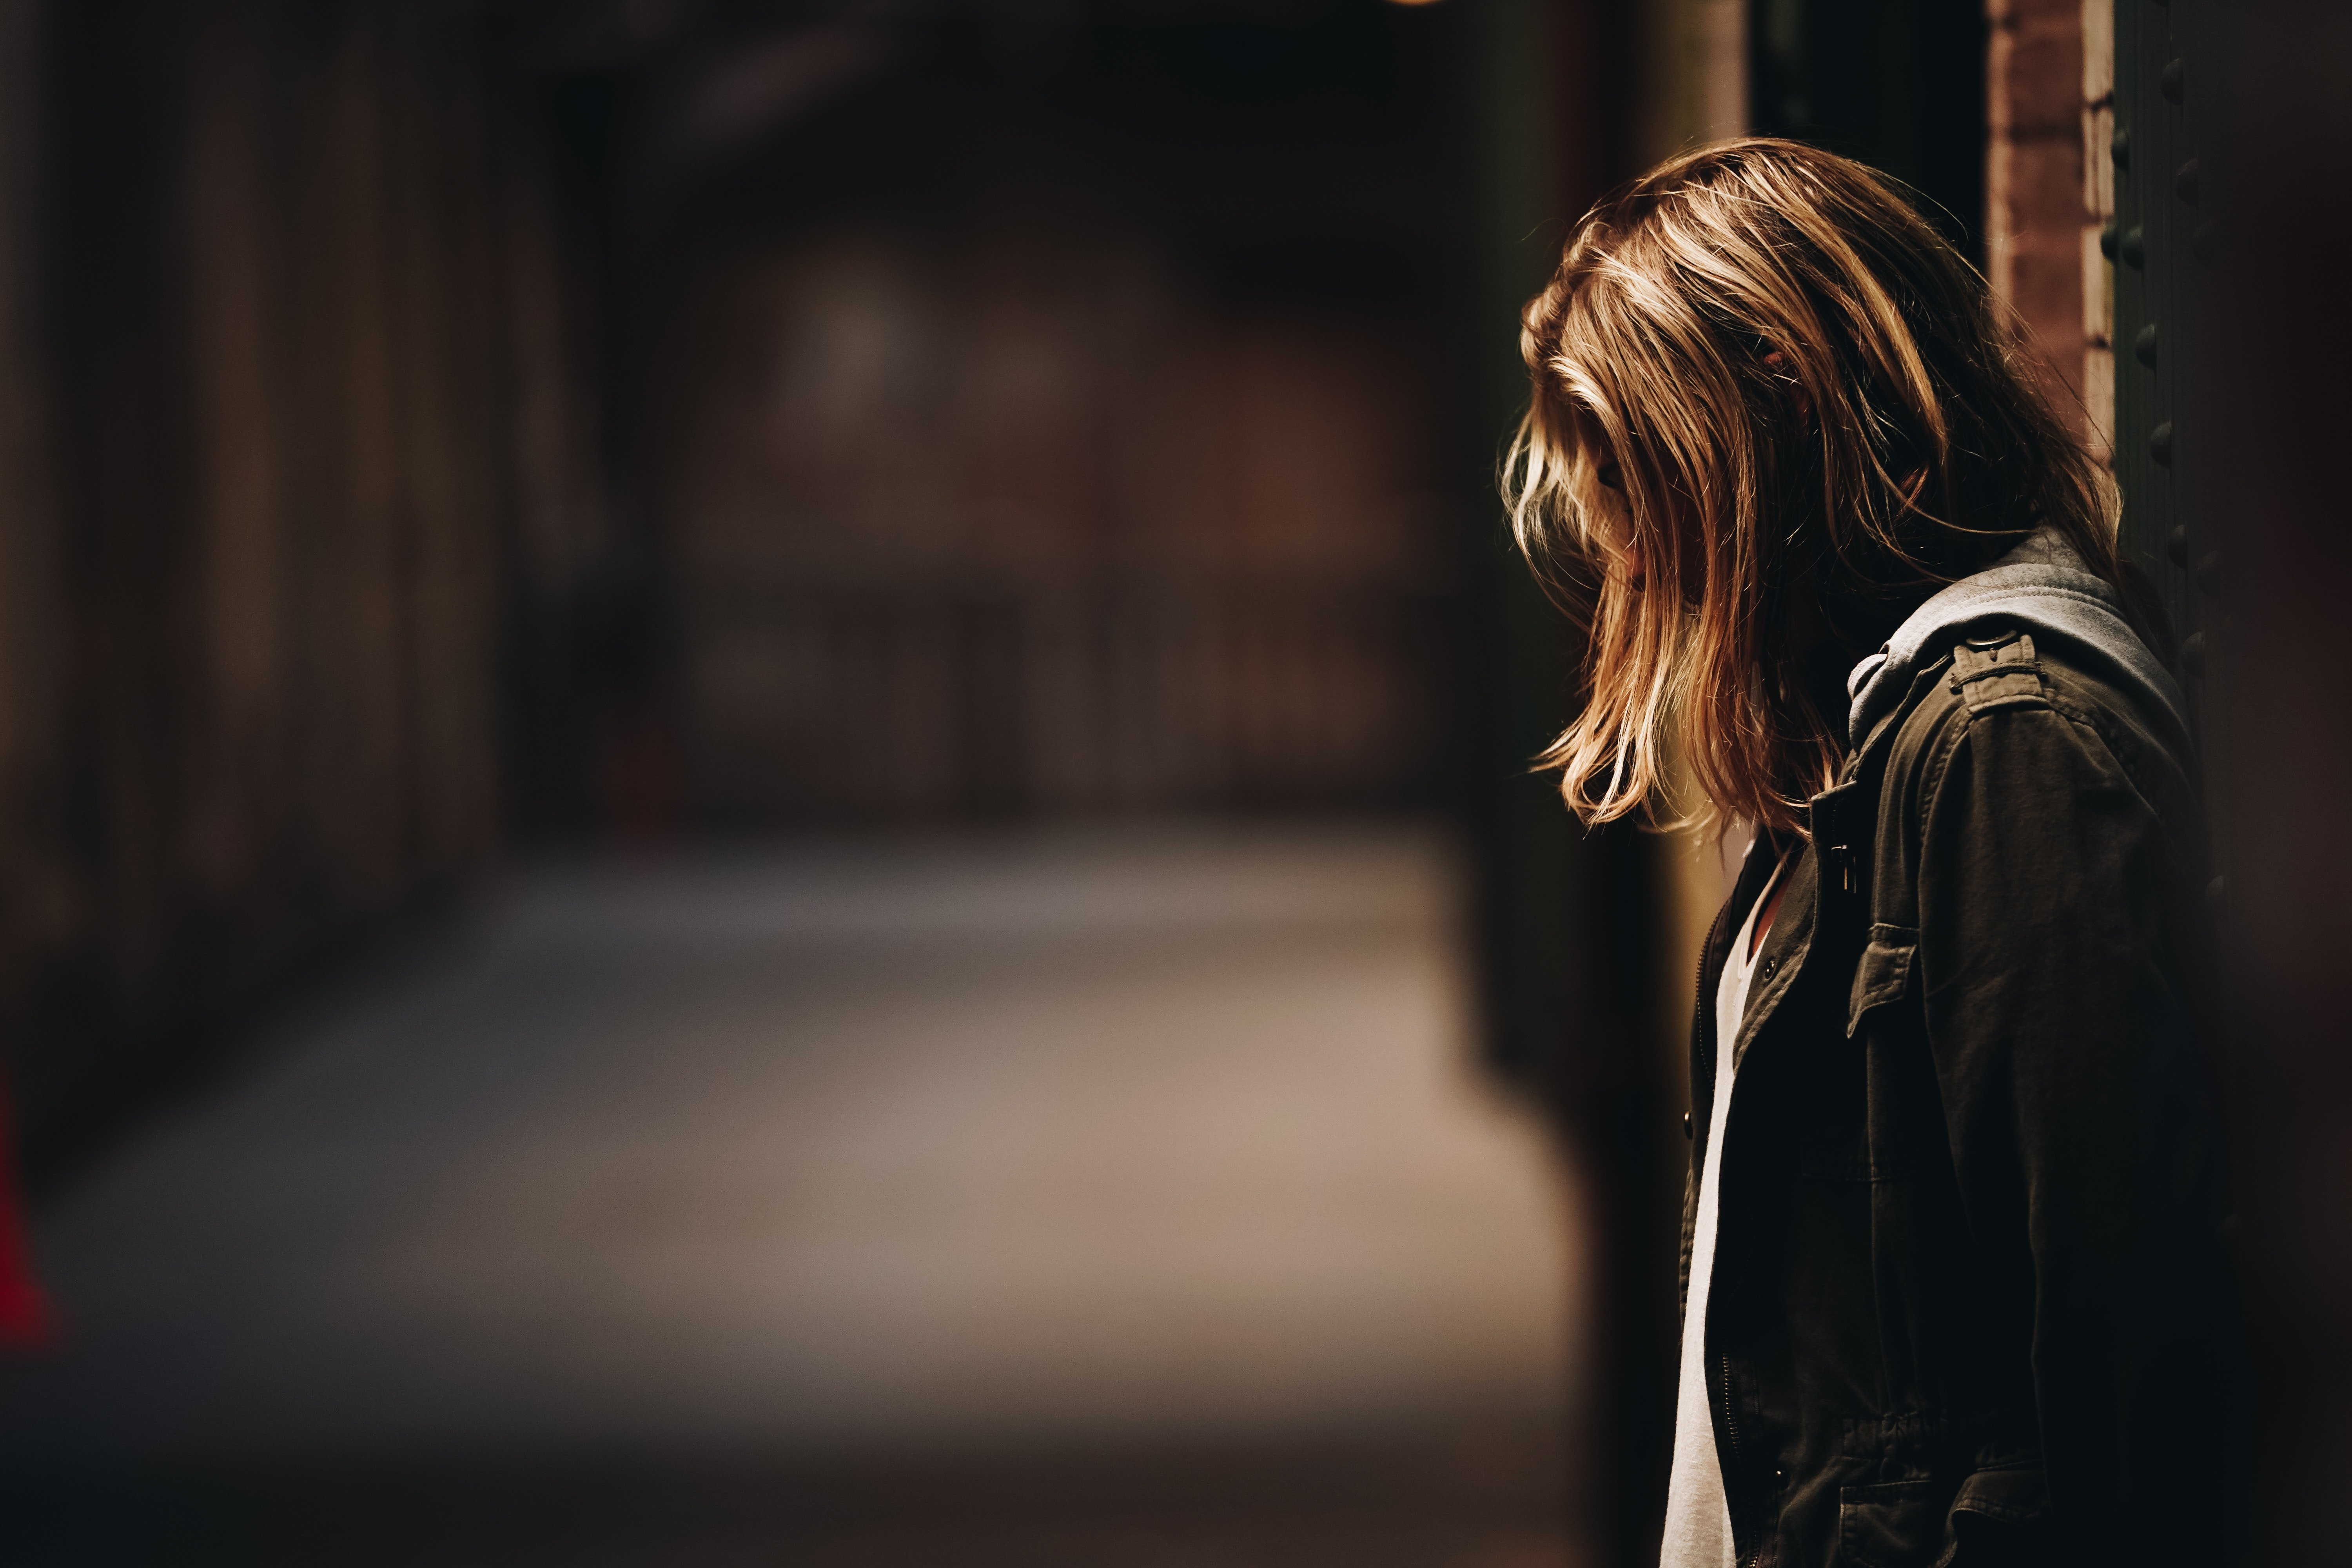 Claire kept asking for help, but everyone turned a deaf ear to her   Photo: Unsplash